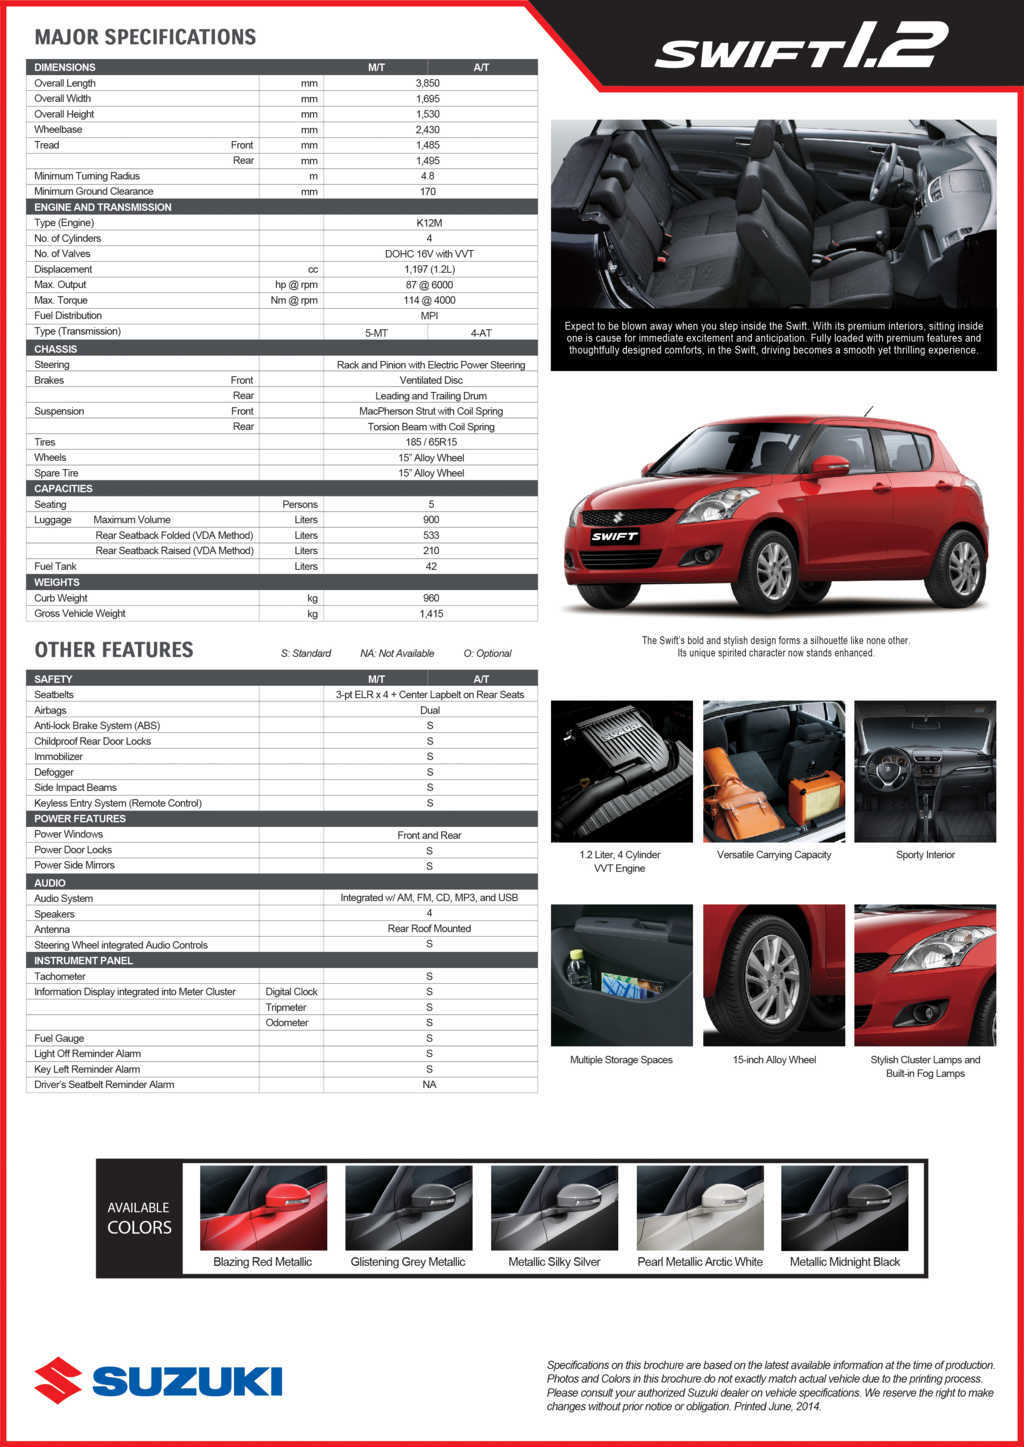 Suzuki Swift Brochure Pdf